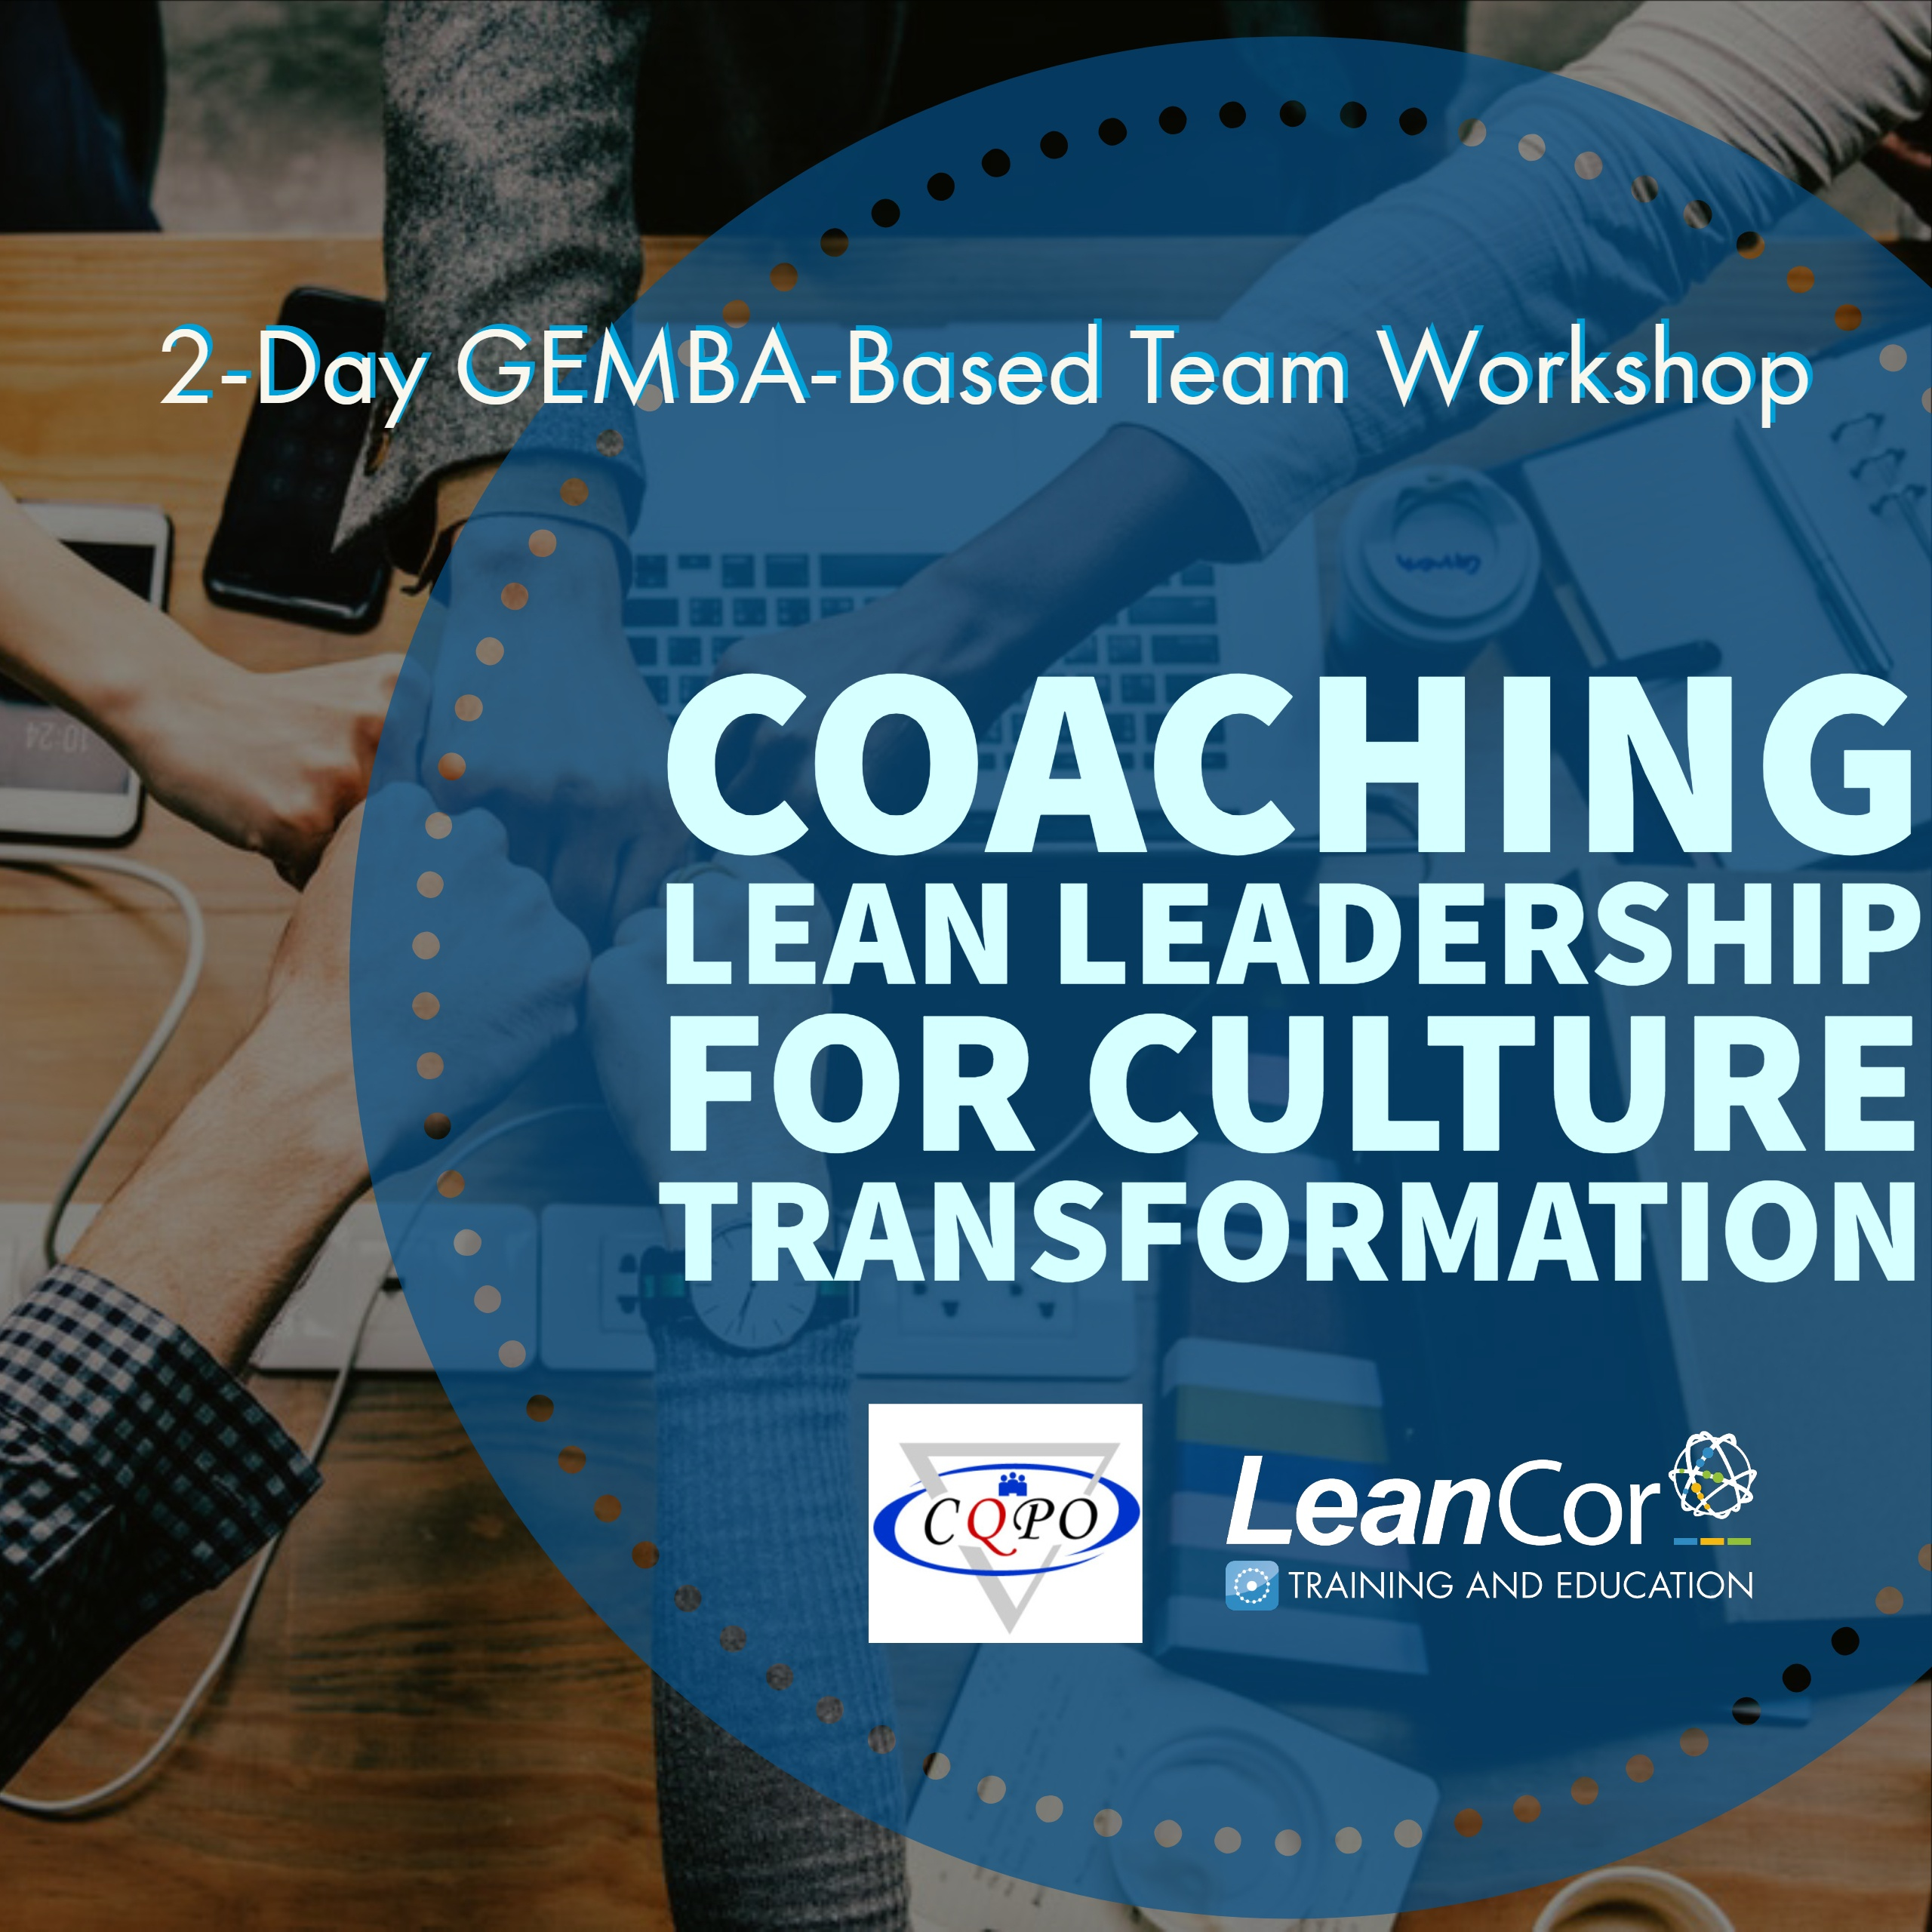 CQPO Coaching Lean Leadership for Culture Transformation (1)